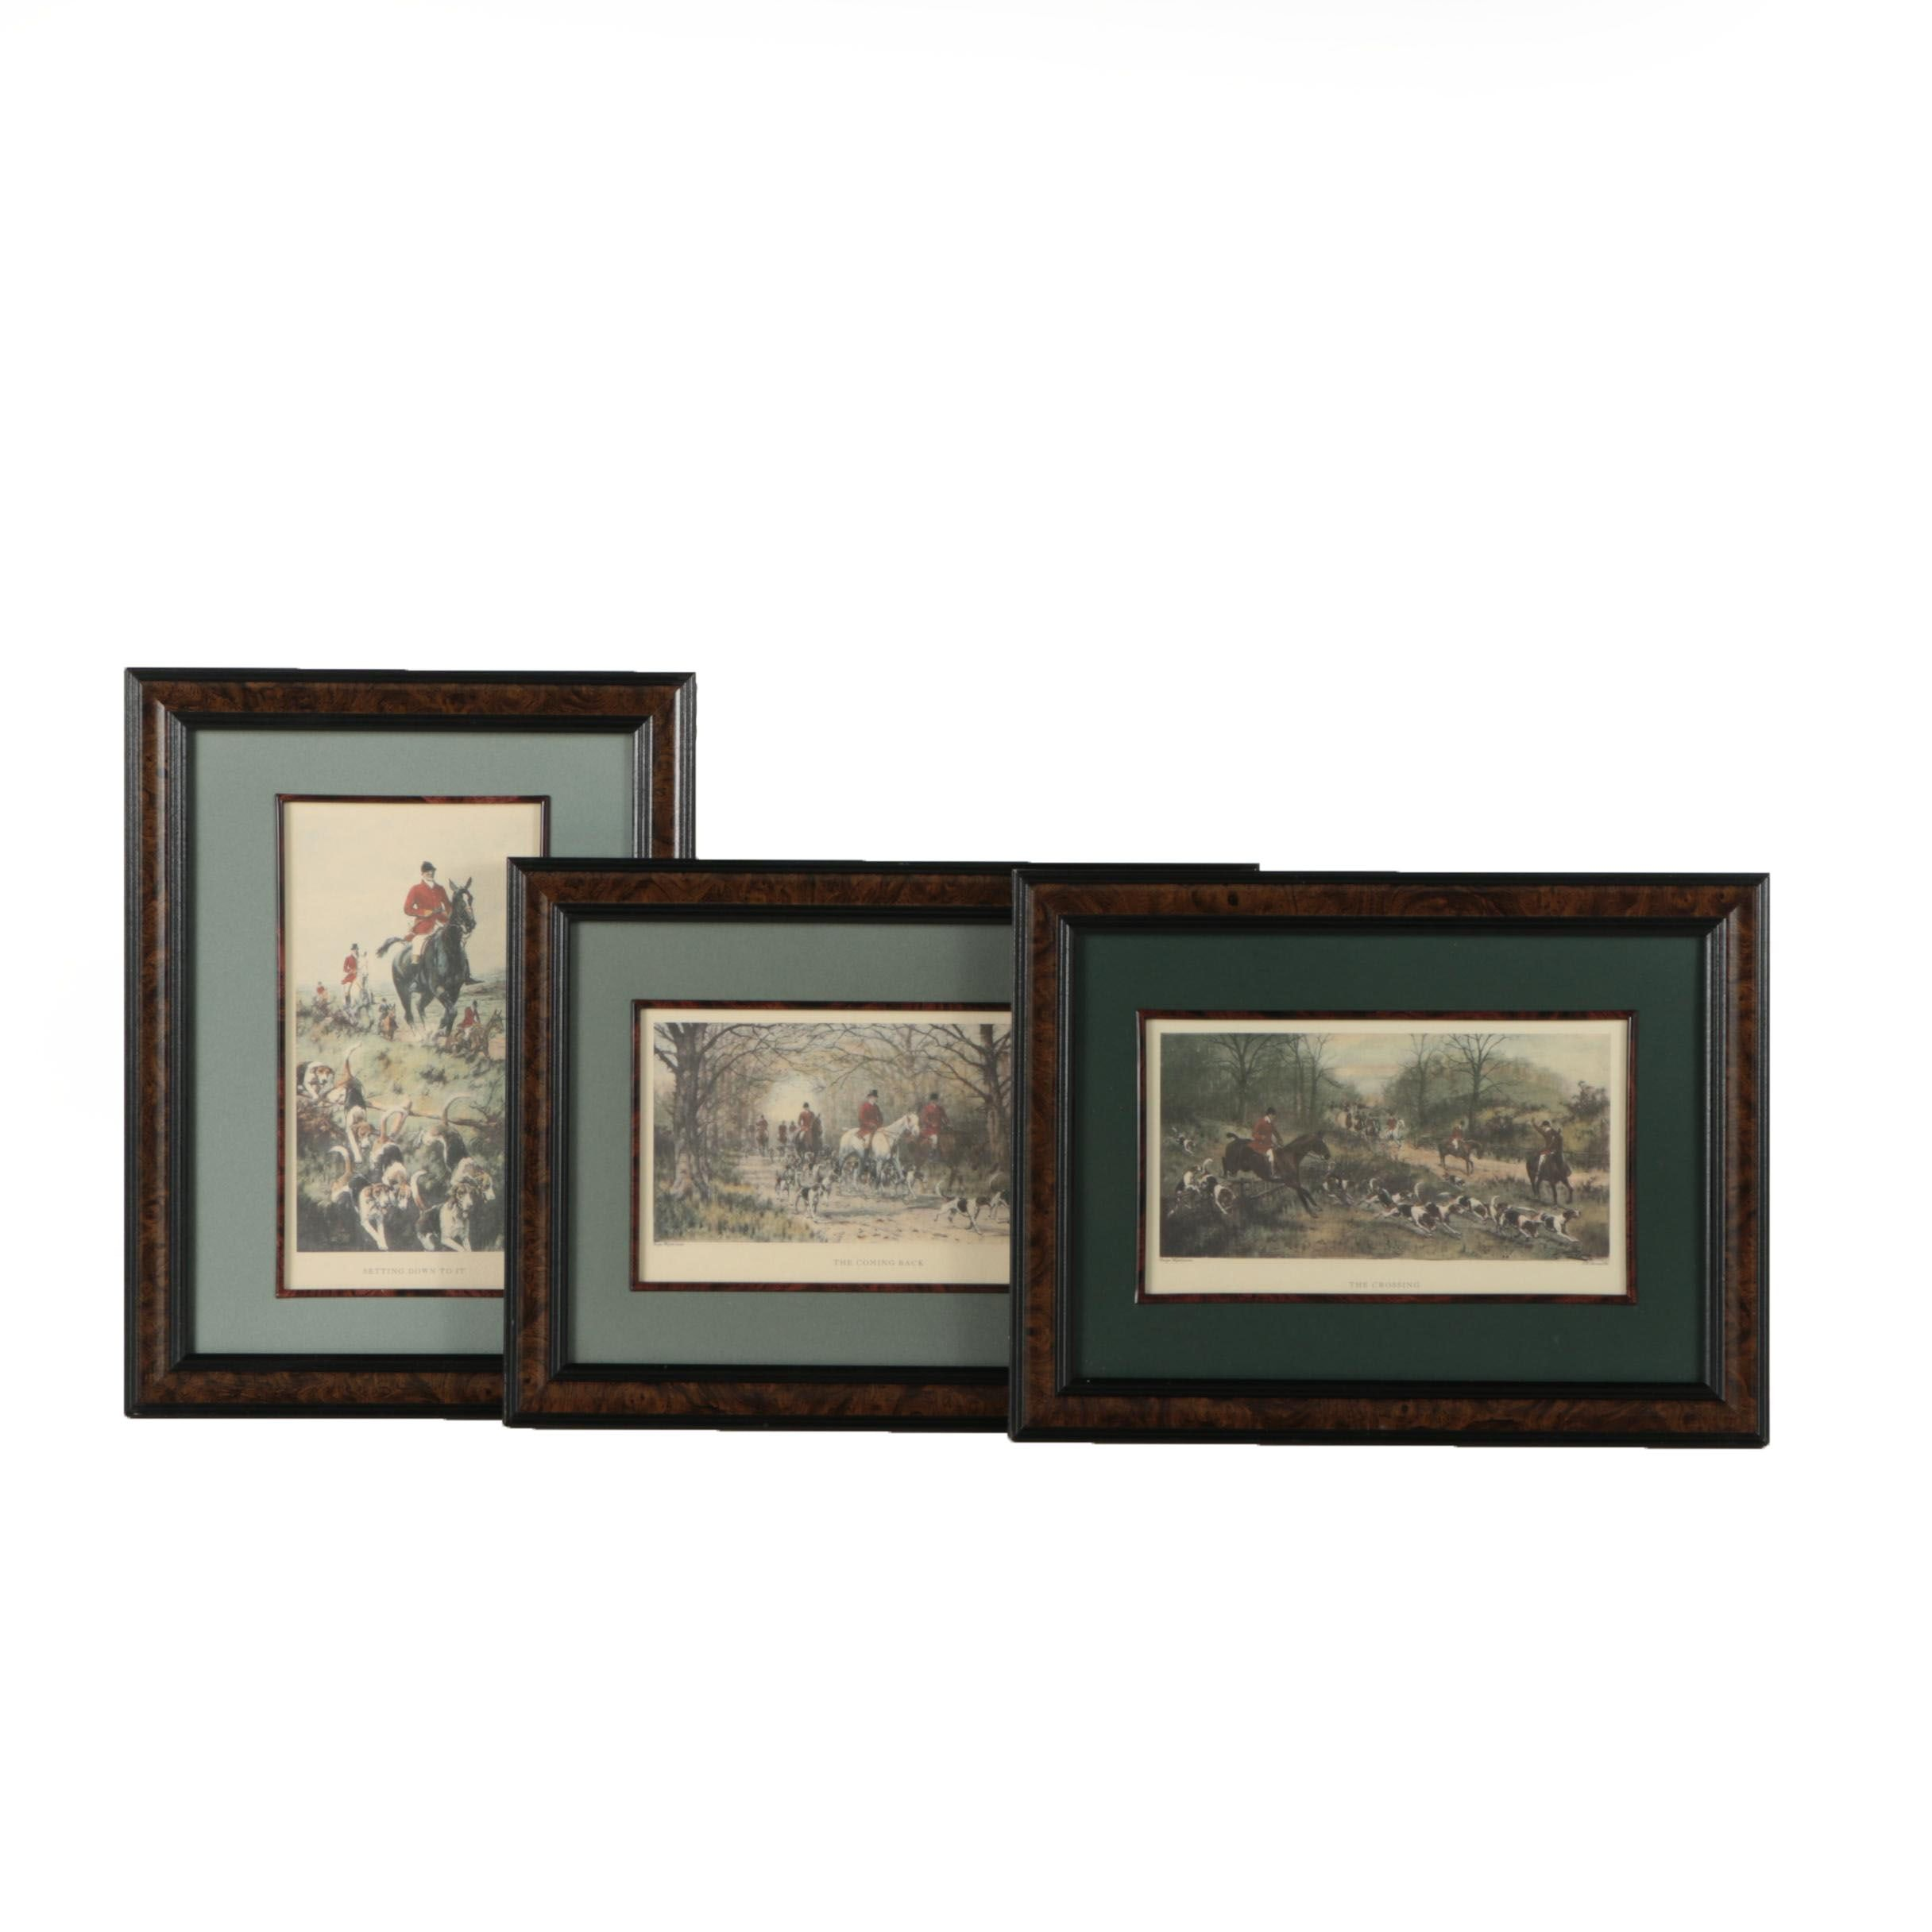 Offset Lithographs After George Wright Artwork of Hunting Scenes